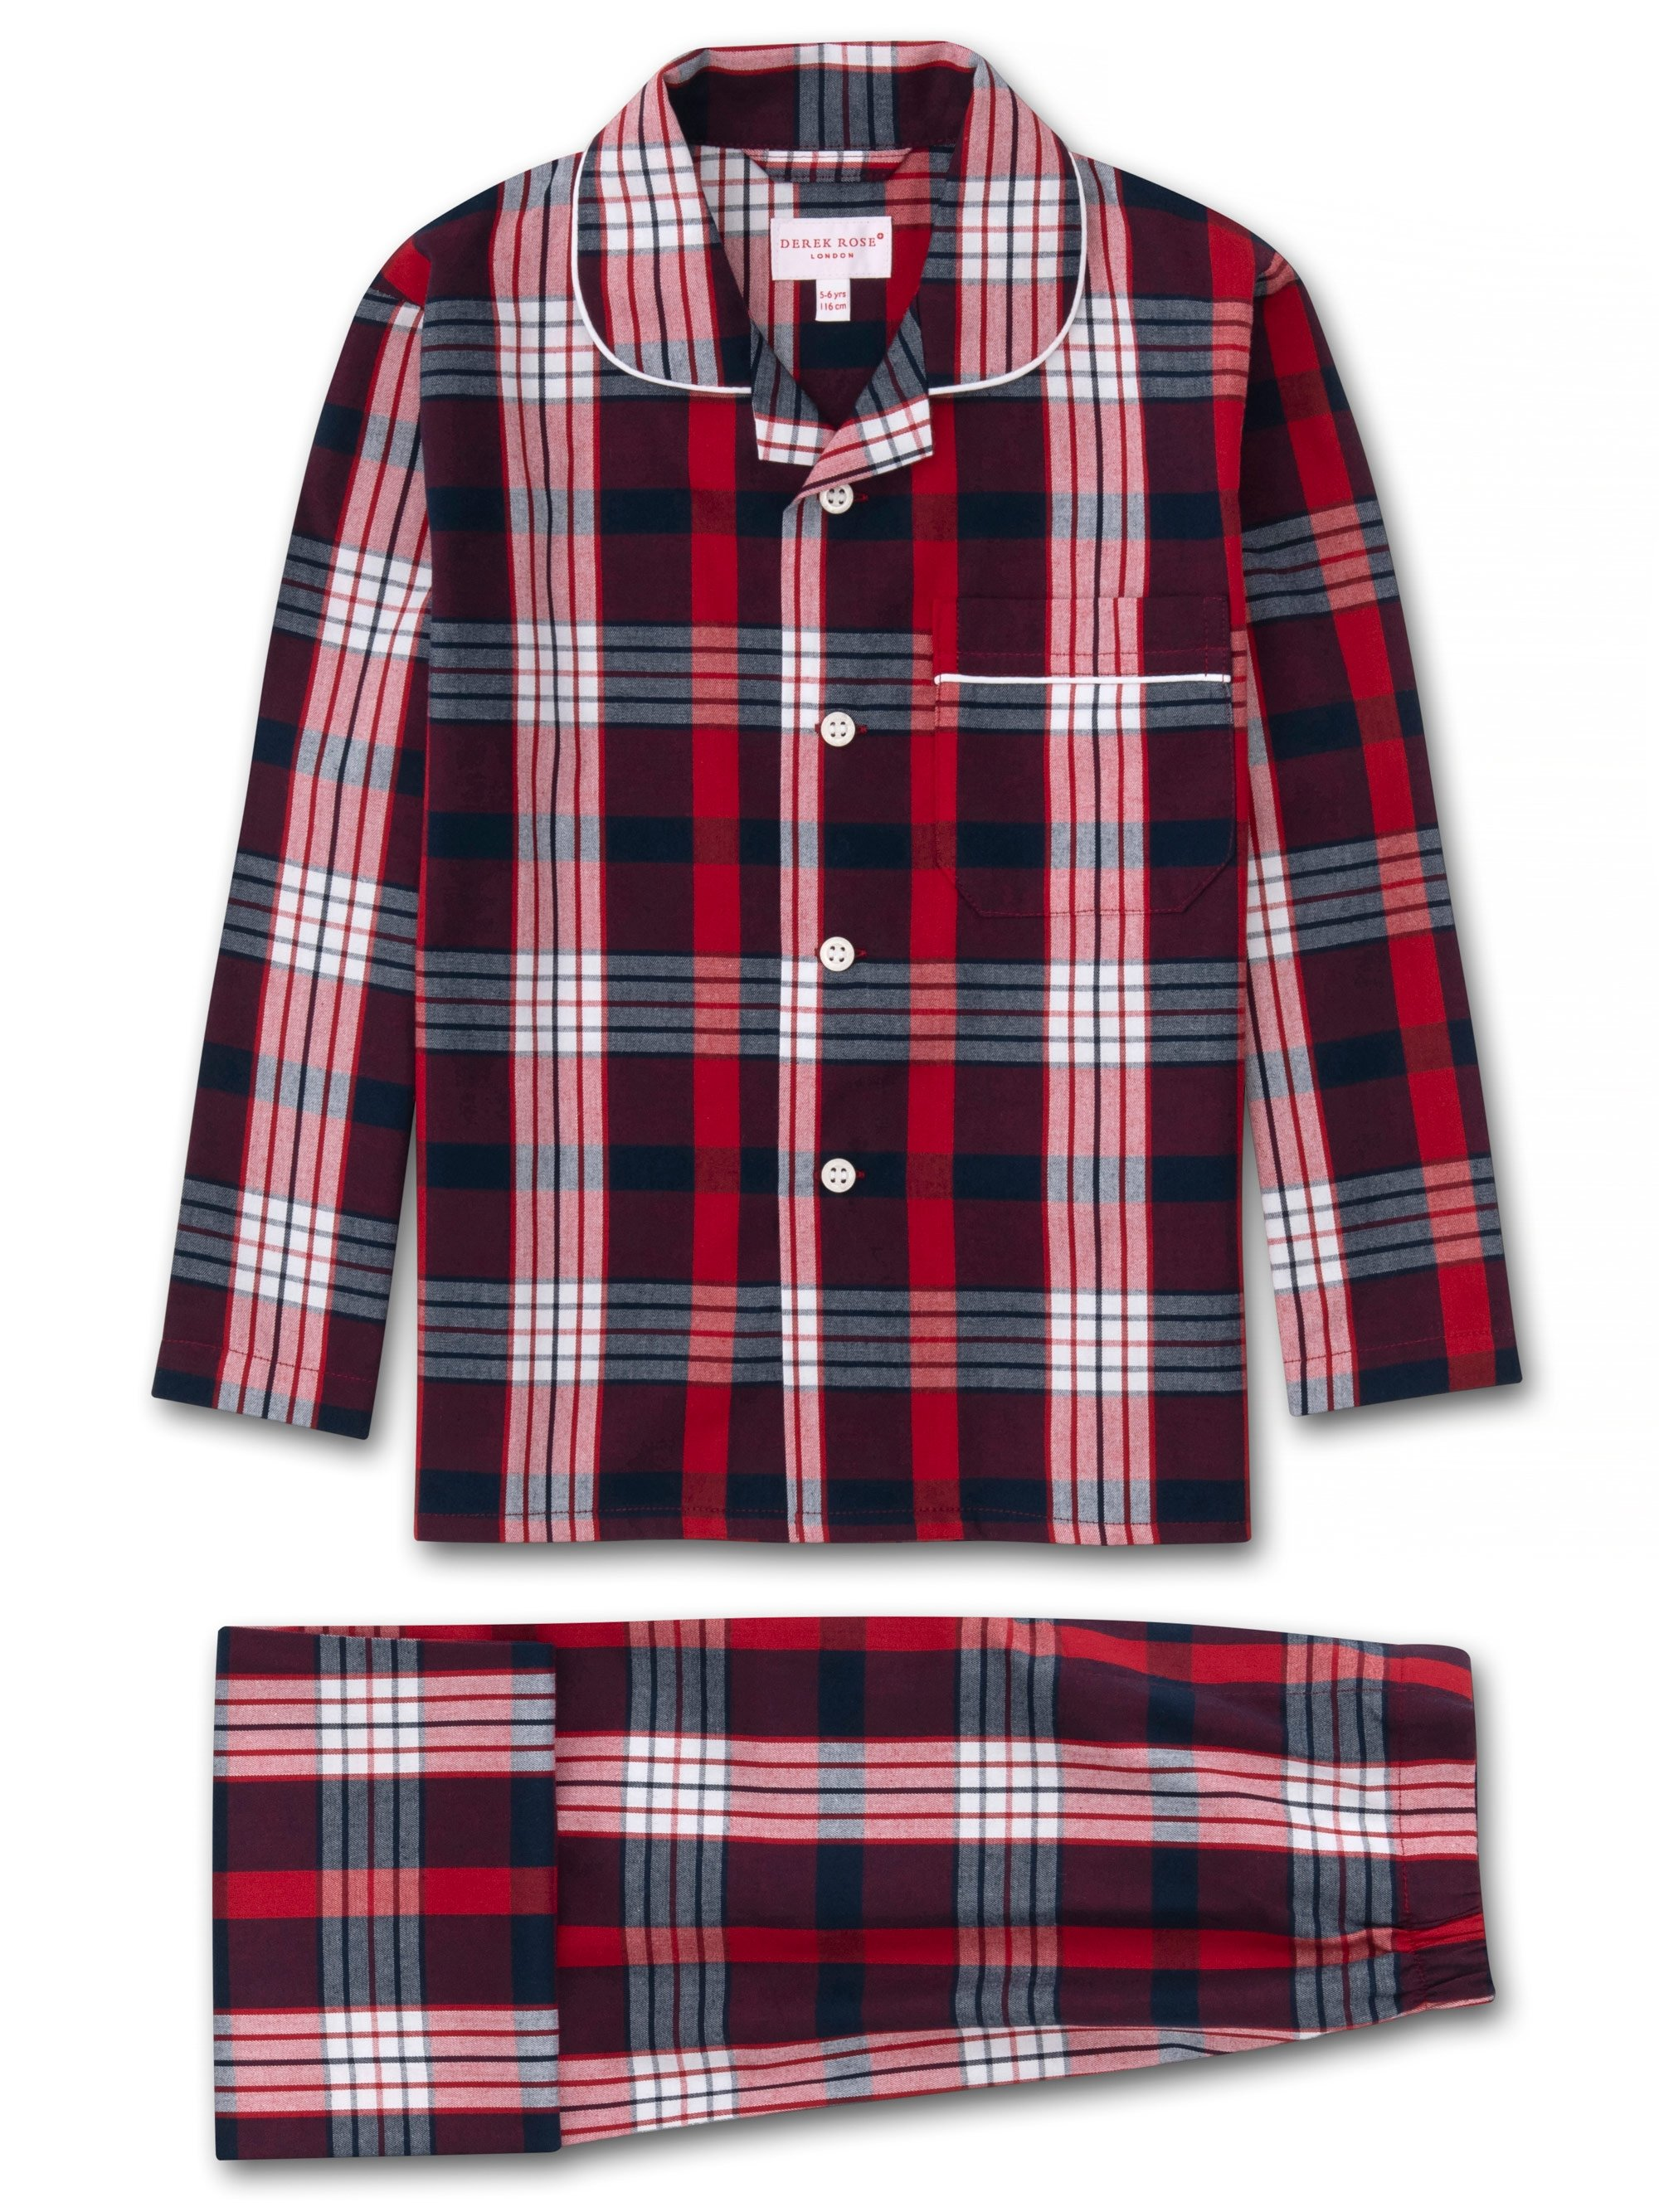 Kids' Pyjamas Ranga 40 Brushed Cotton Check Red